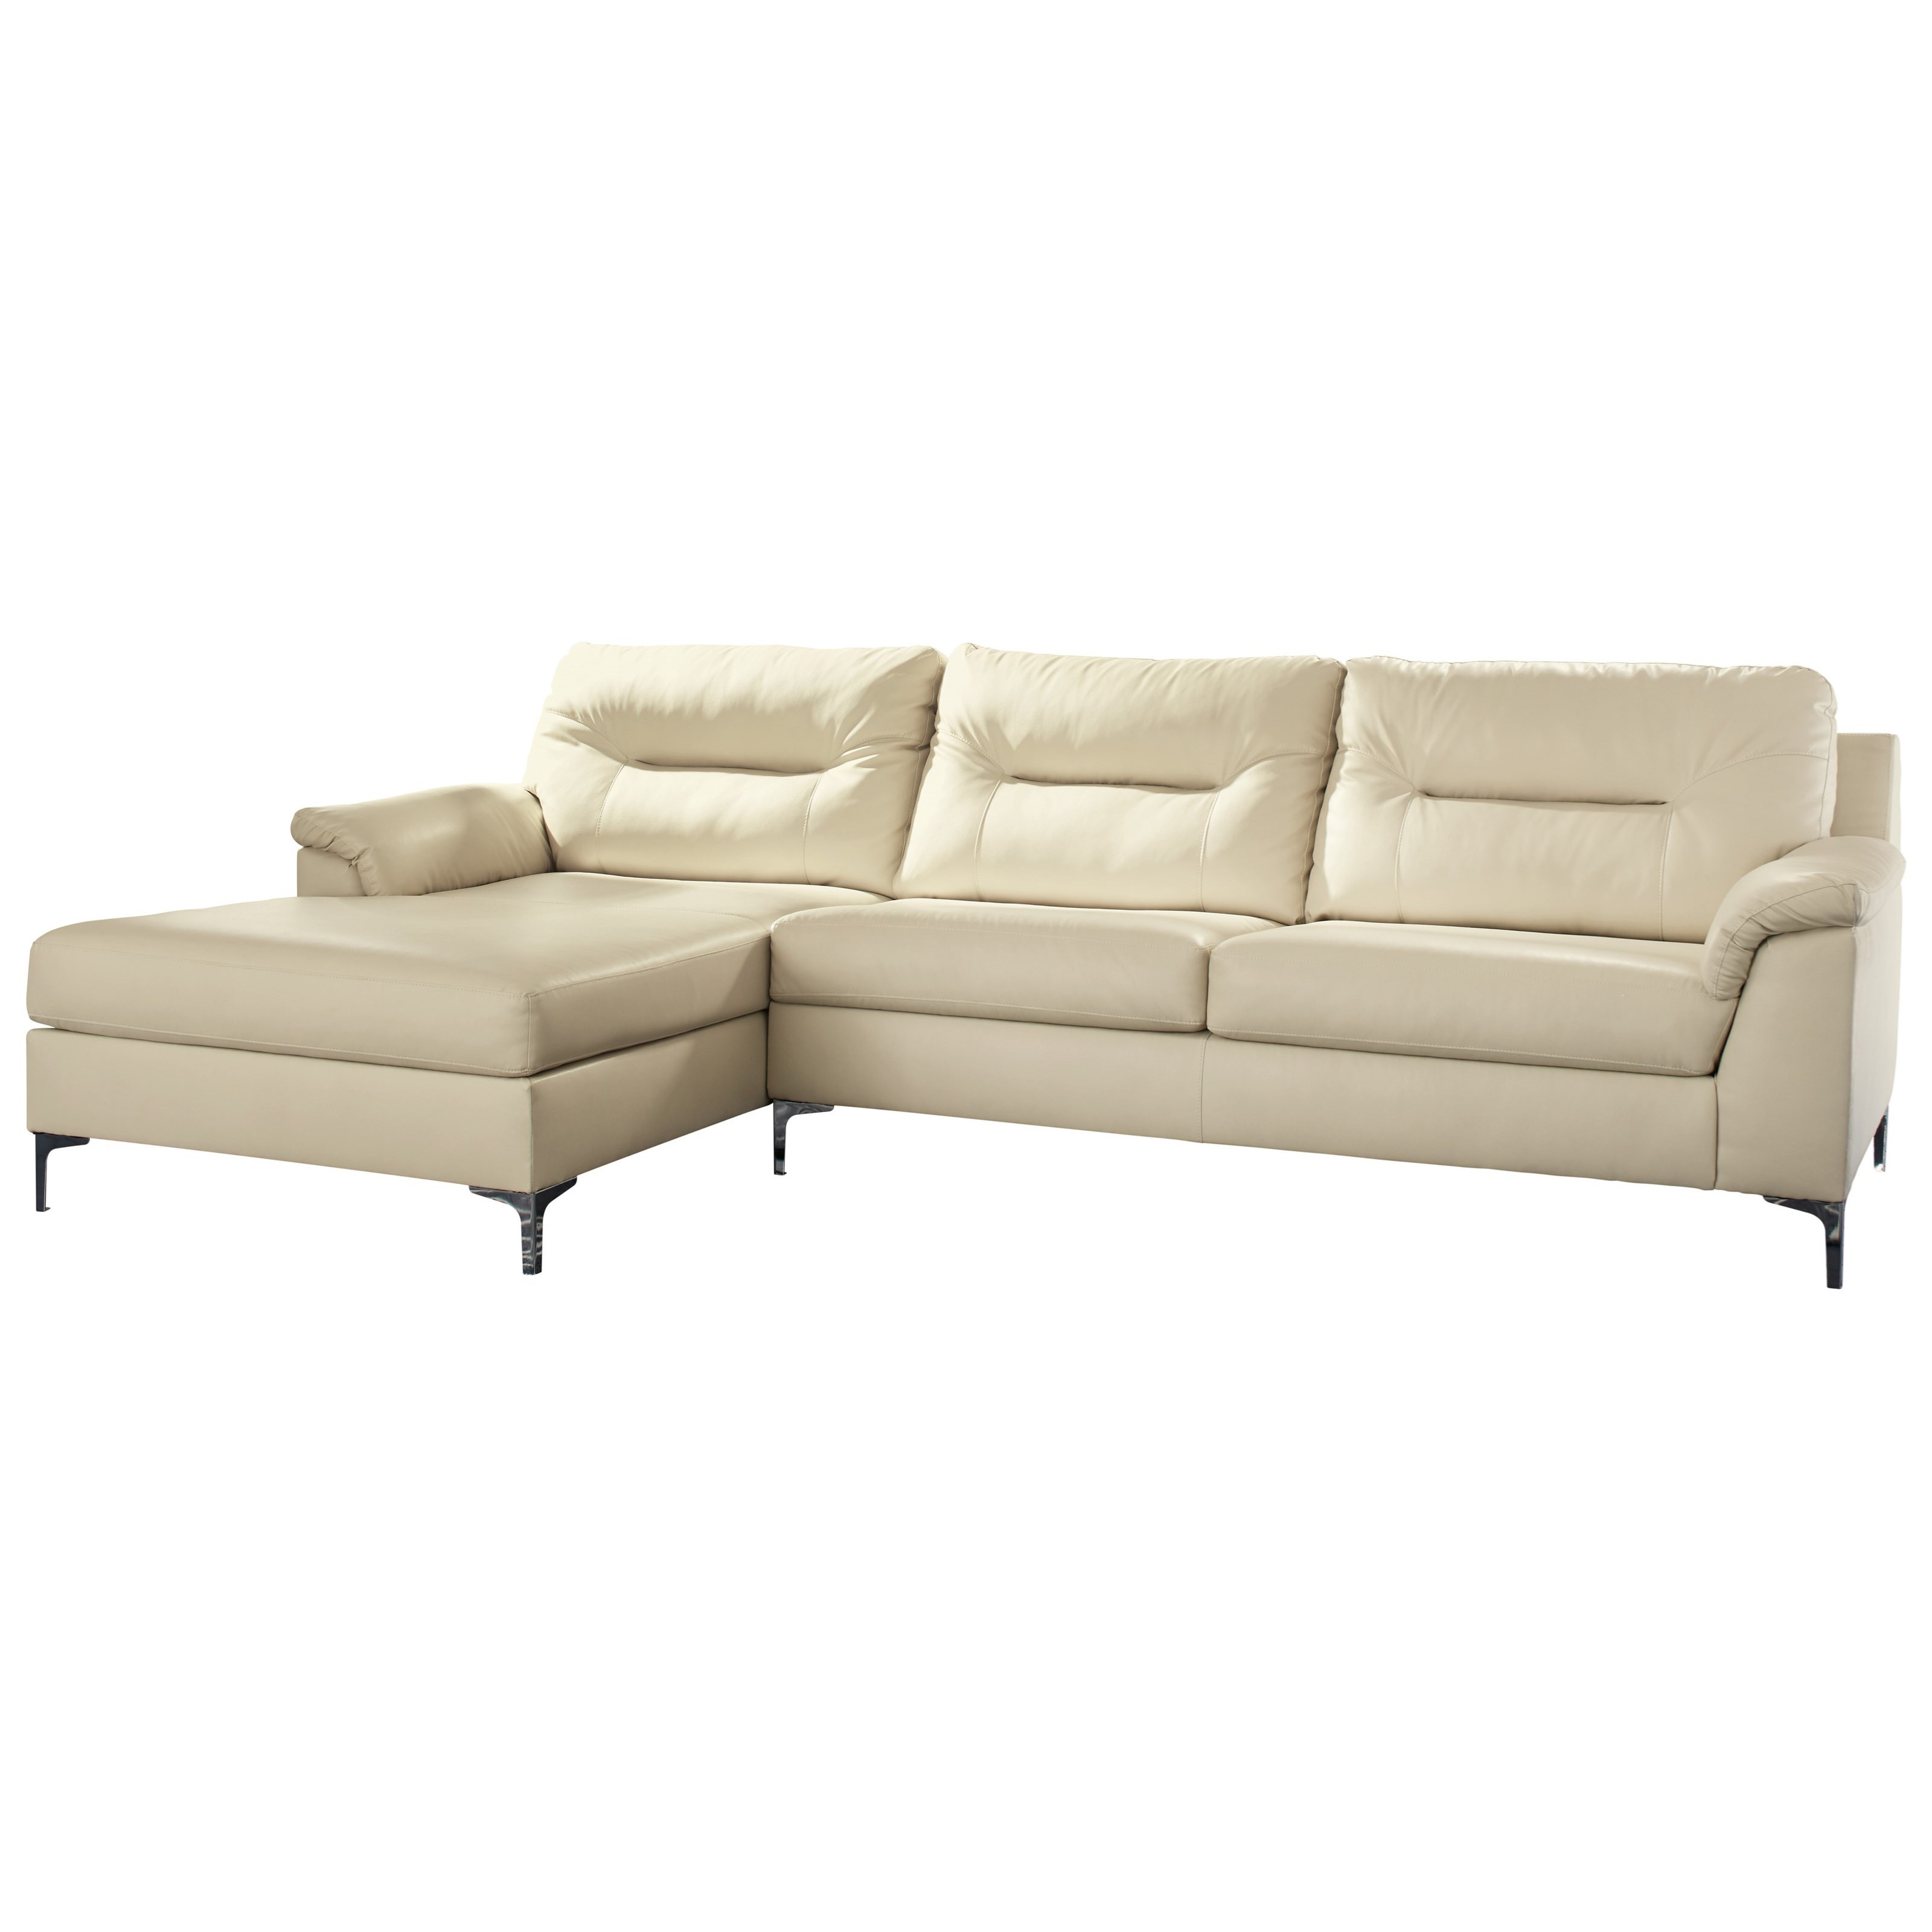 Signature Design by Ashley Tensas Sectional - Item Number: 3960216+67